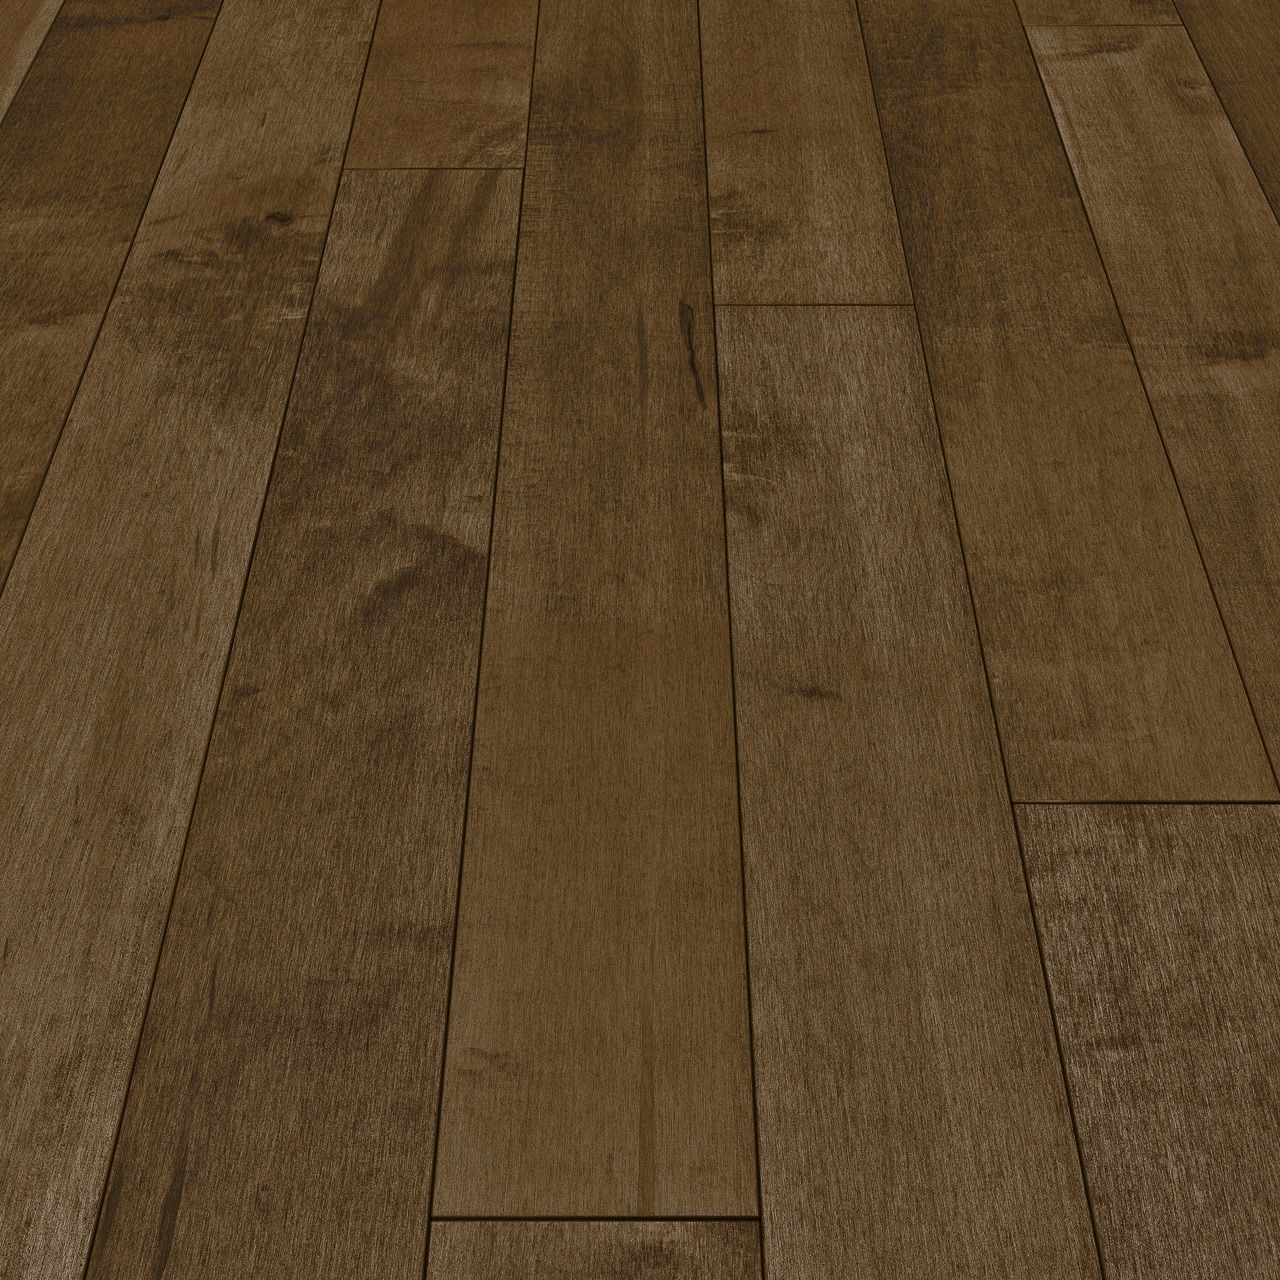 hard maple, truffe, oiled hardwood flooring